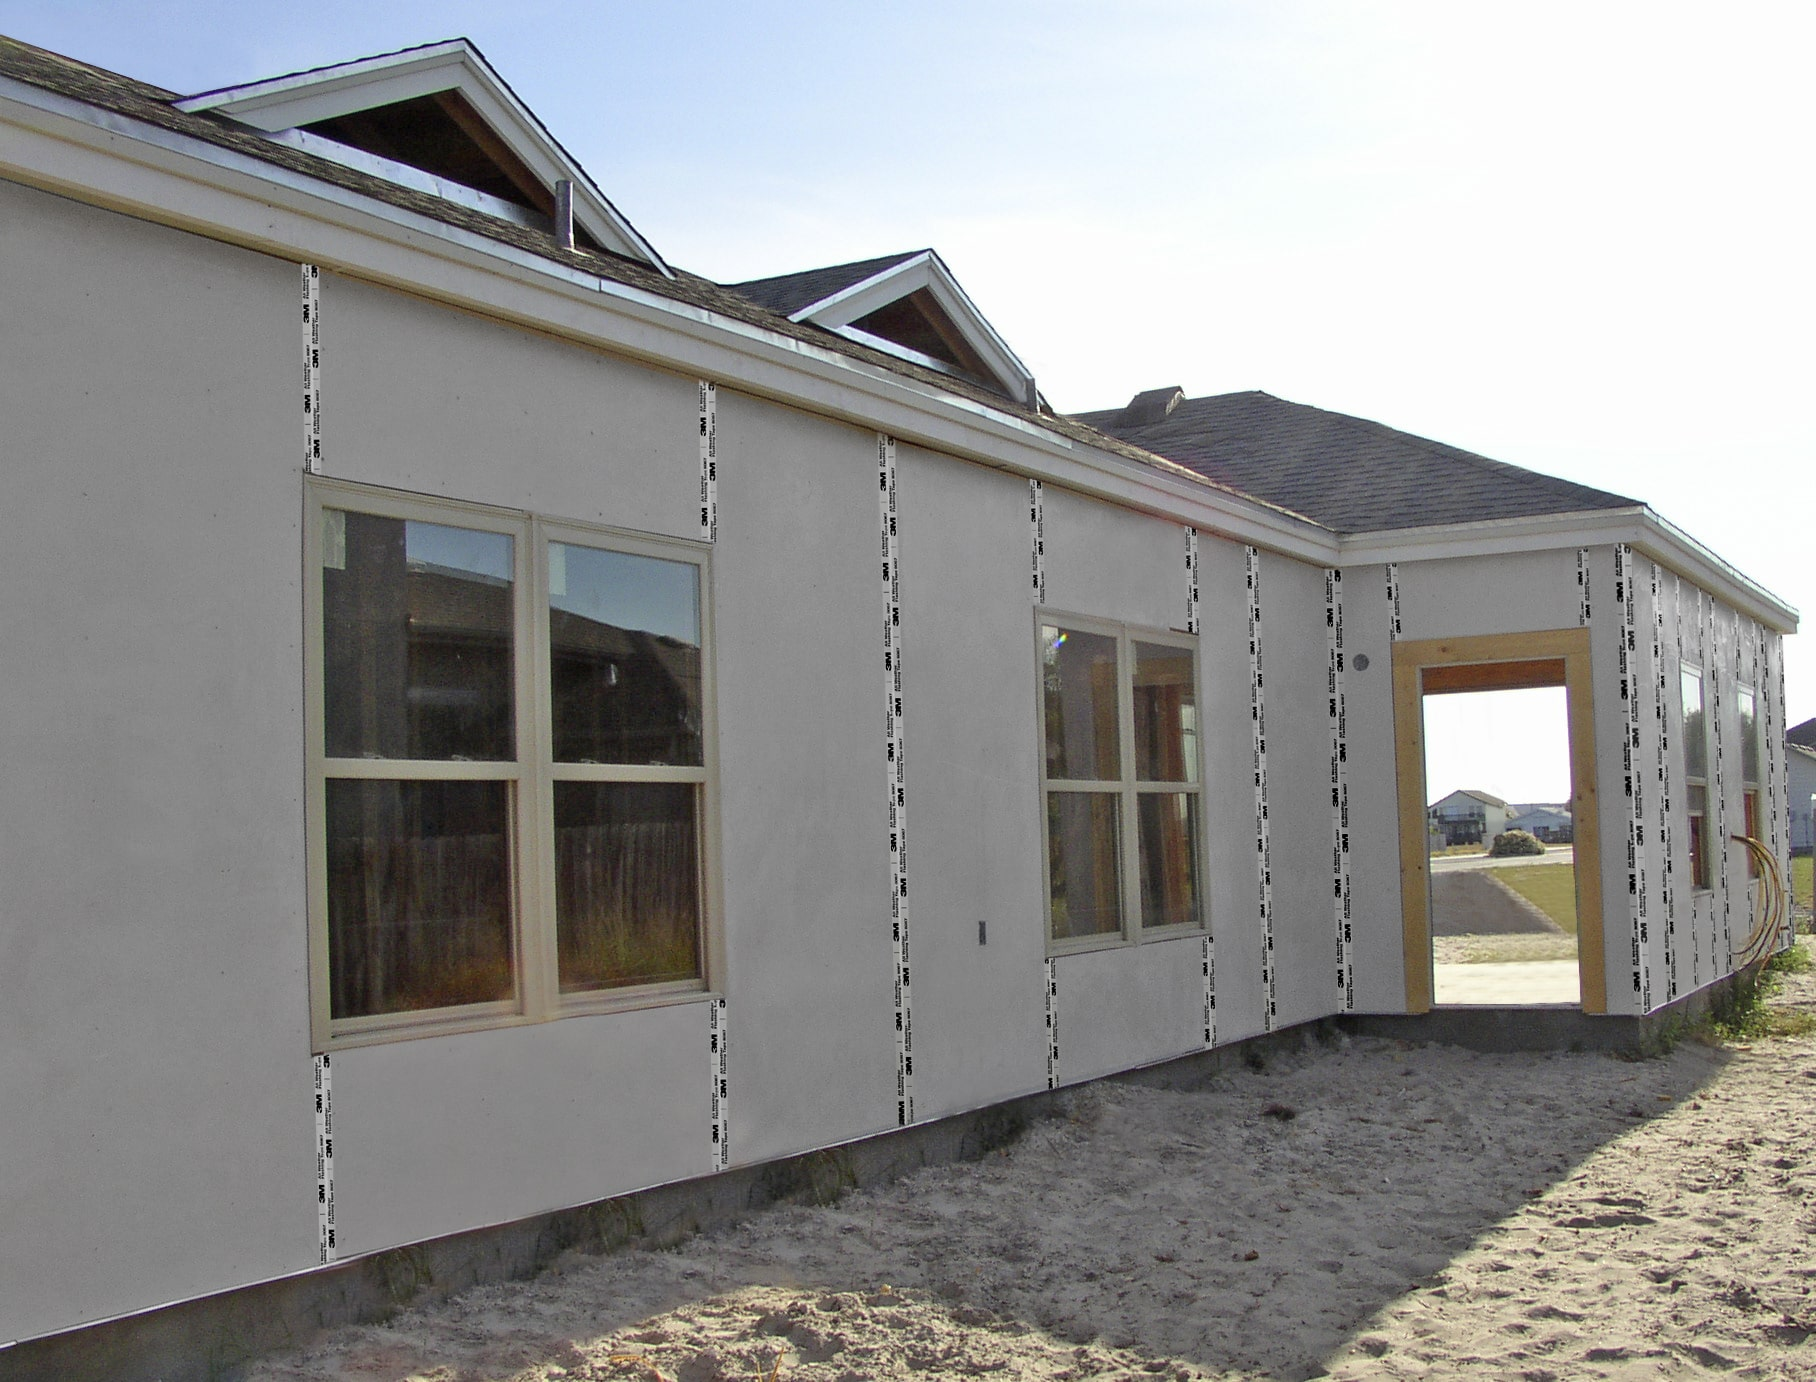 Exterior sheathing system improves energy efficiency for Exterior wall sheeting